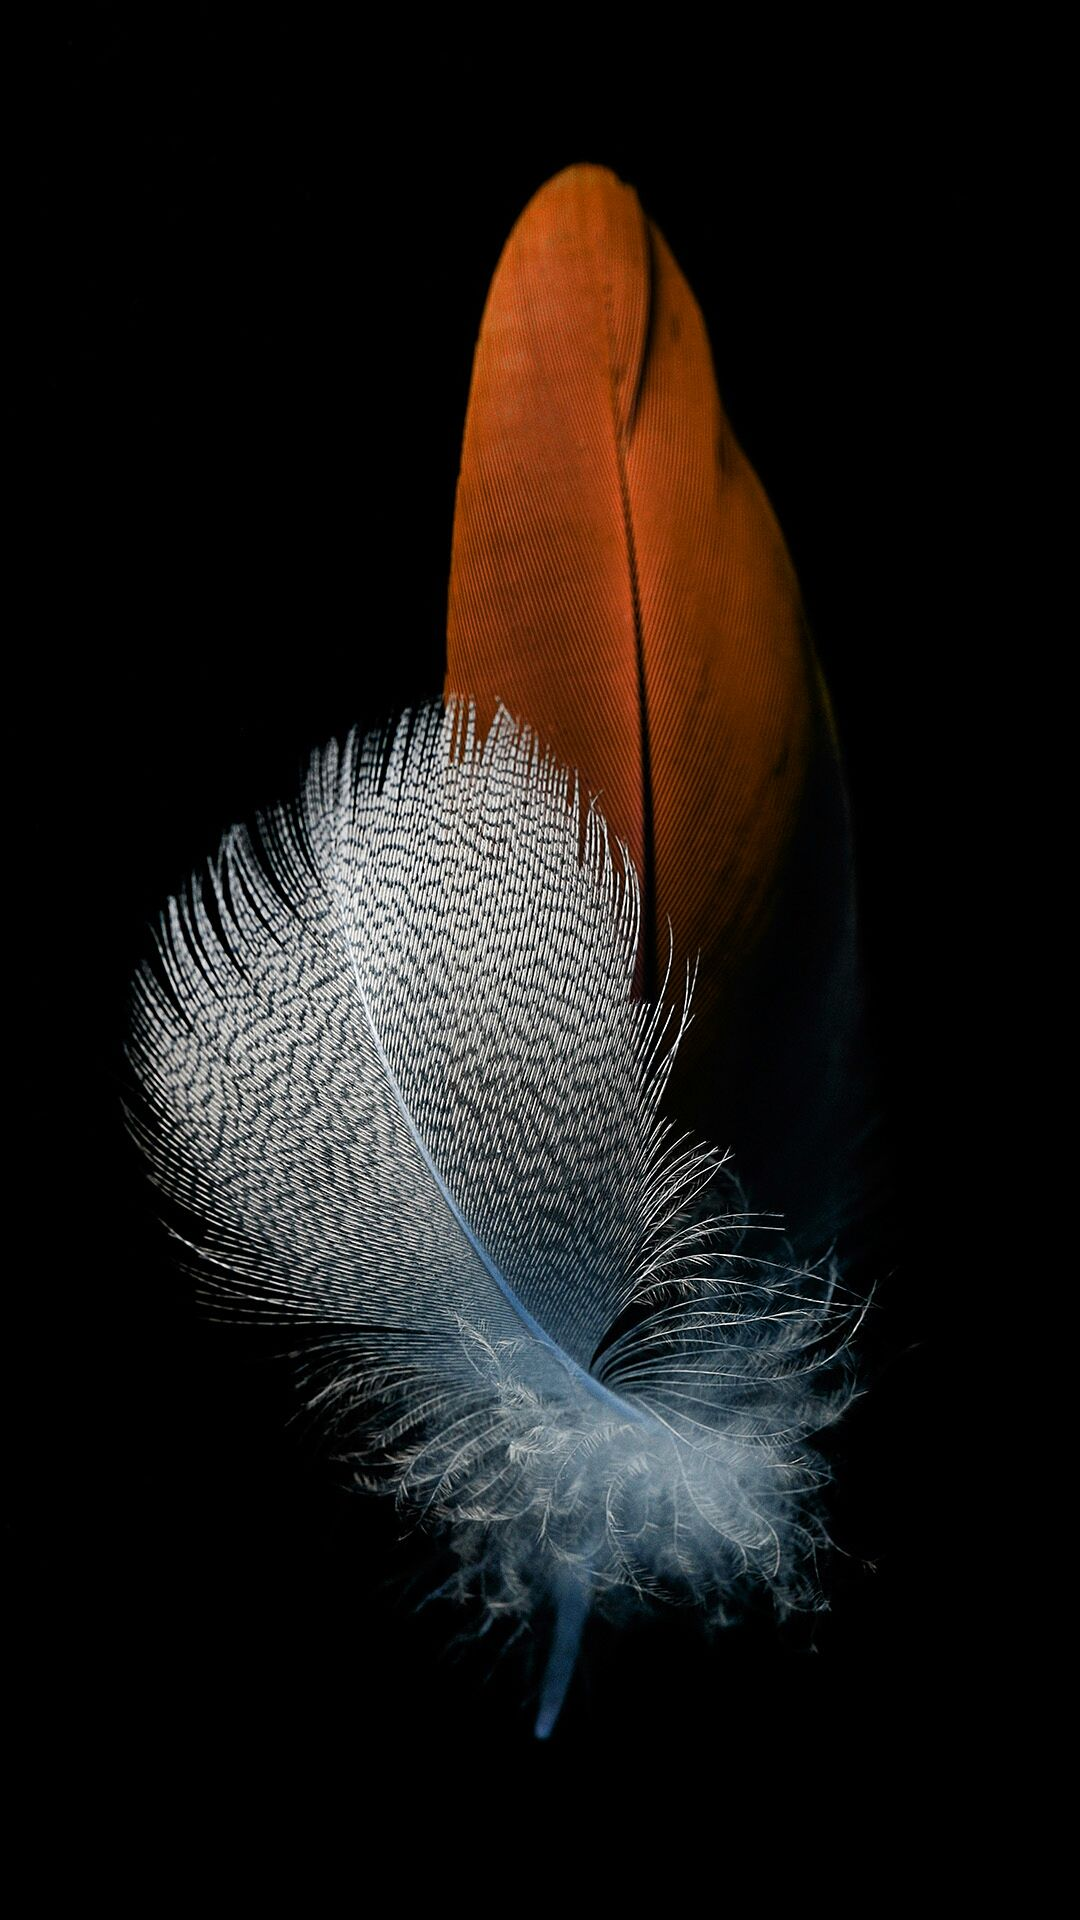 Huawei P8 Lite Feather Wallpapers Wallpaper Wallpaper Iphone